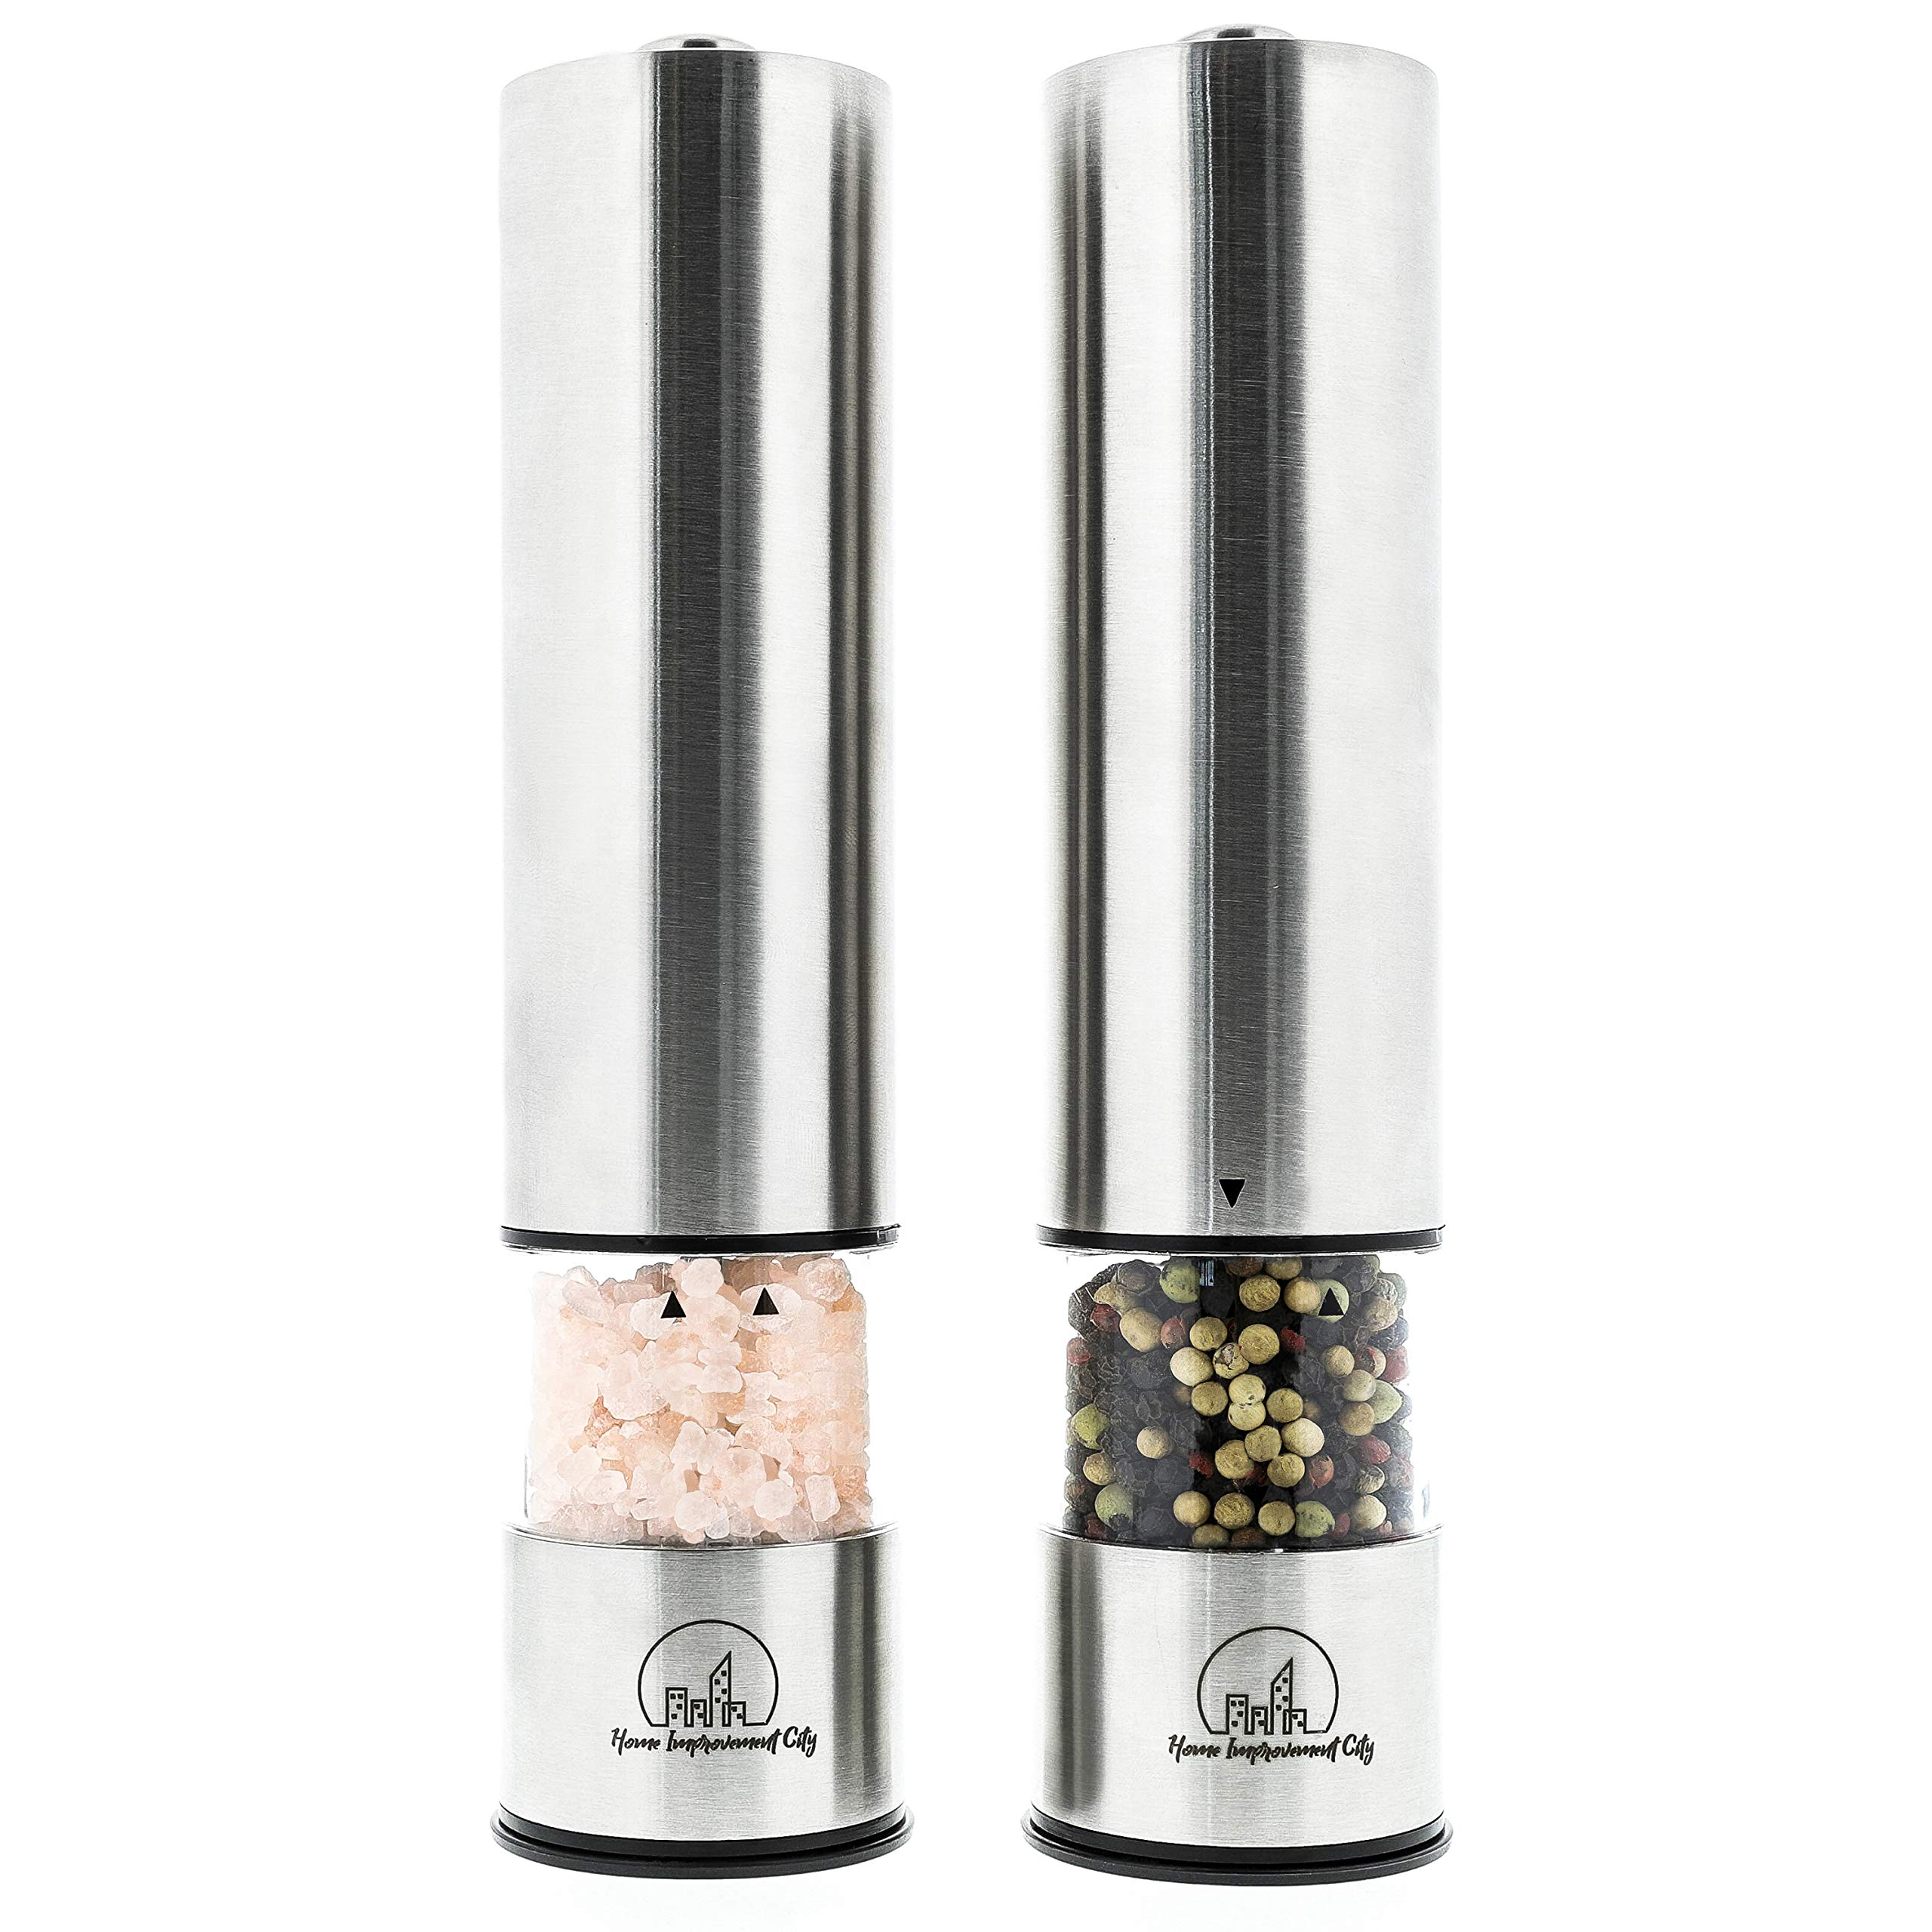 Electric Salt And Pepper Grinder Set by Home Improvement City - Battery Operated Stainless Steel Mills With LED Lights And Clear Acrylic Glass - Automatic One Hand Operation And Adjustable Coarseness by Home Improvement City (Image #5)